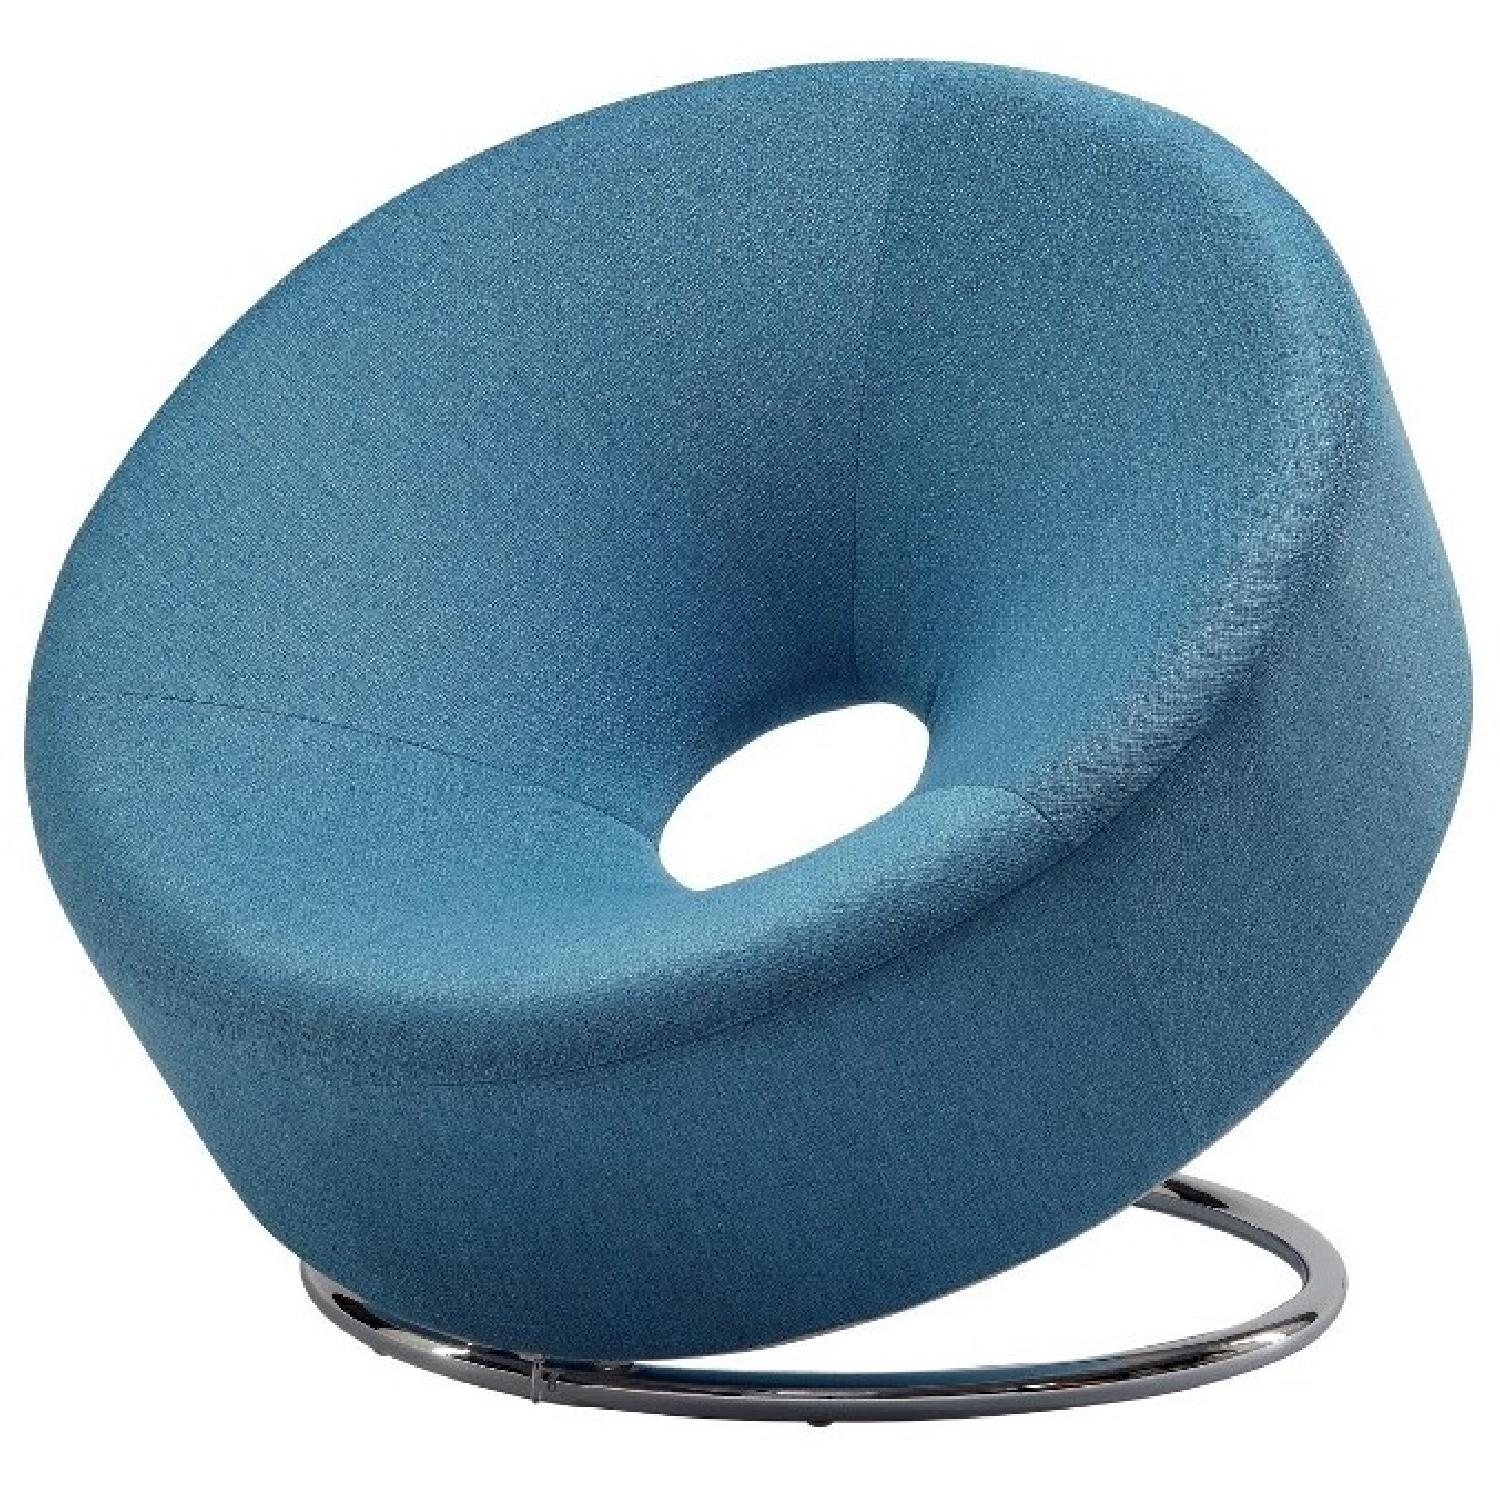 Round Contemporary Accent Chair in Blue Fabric